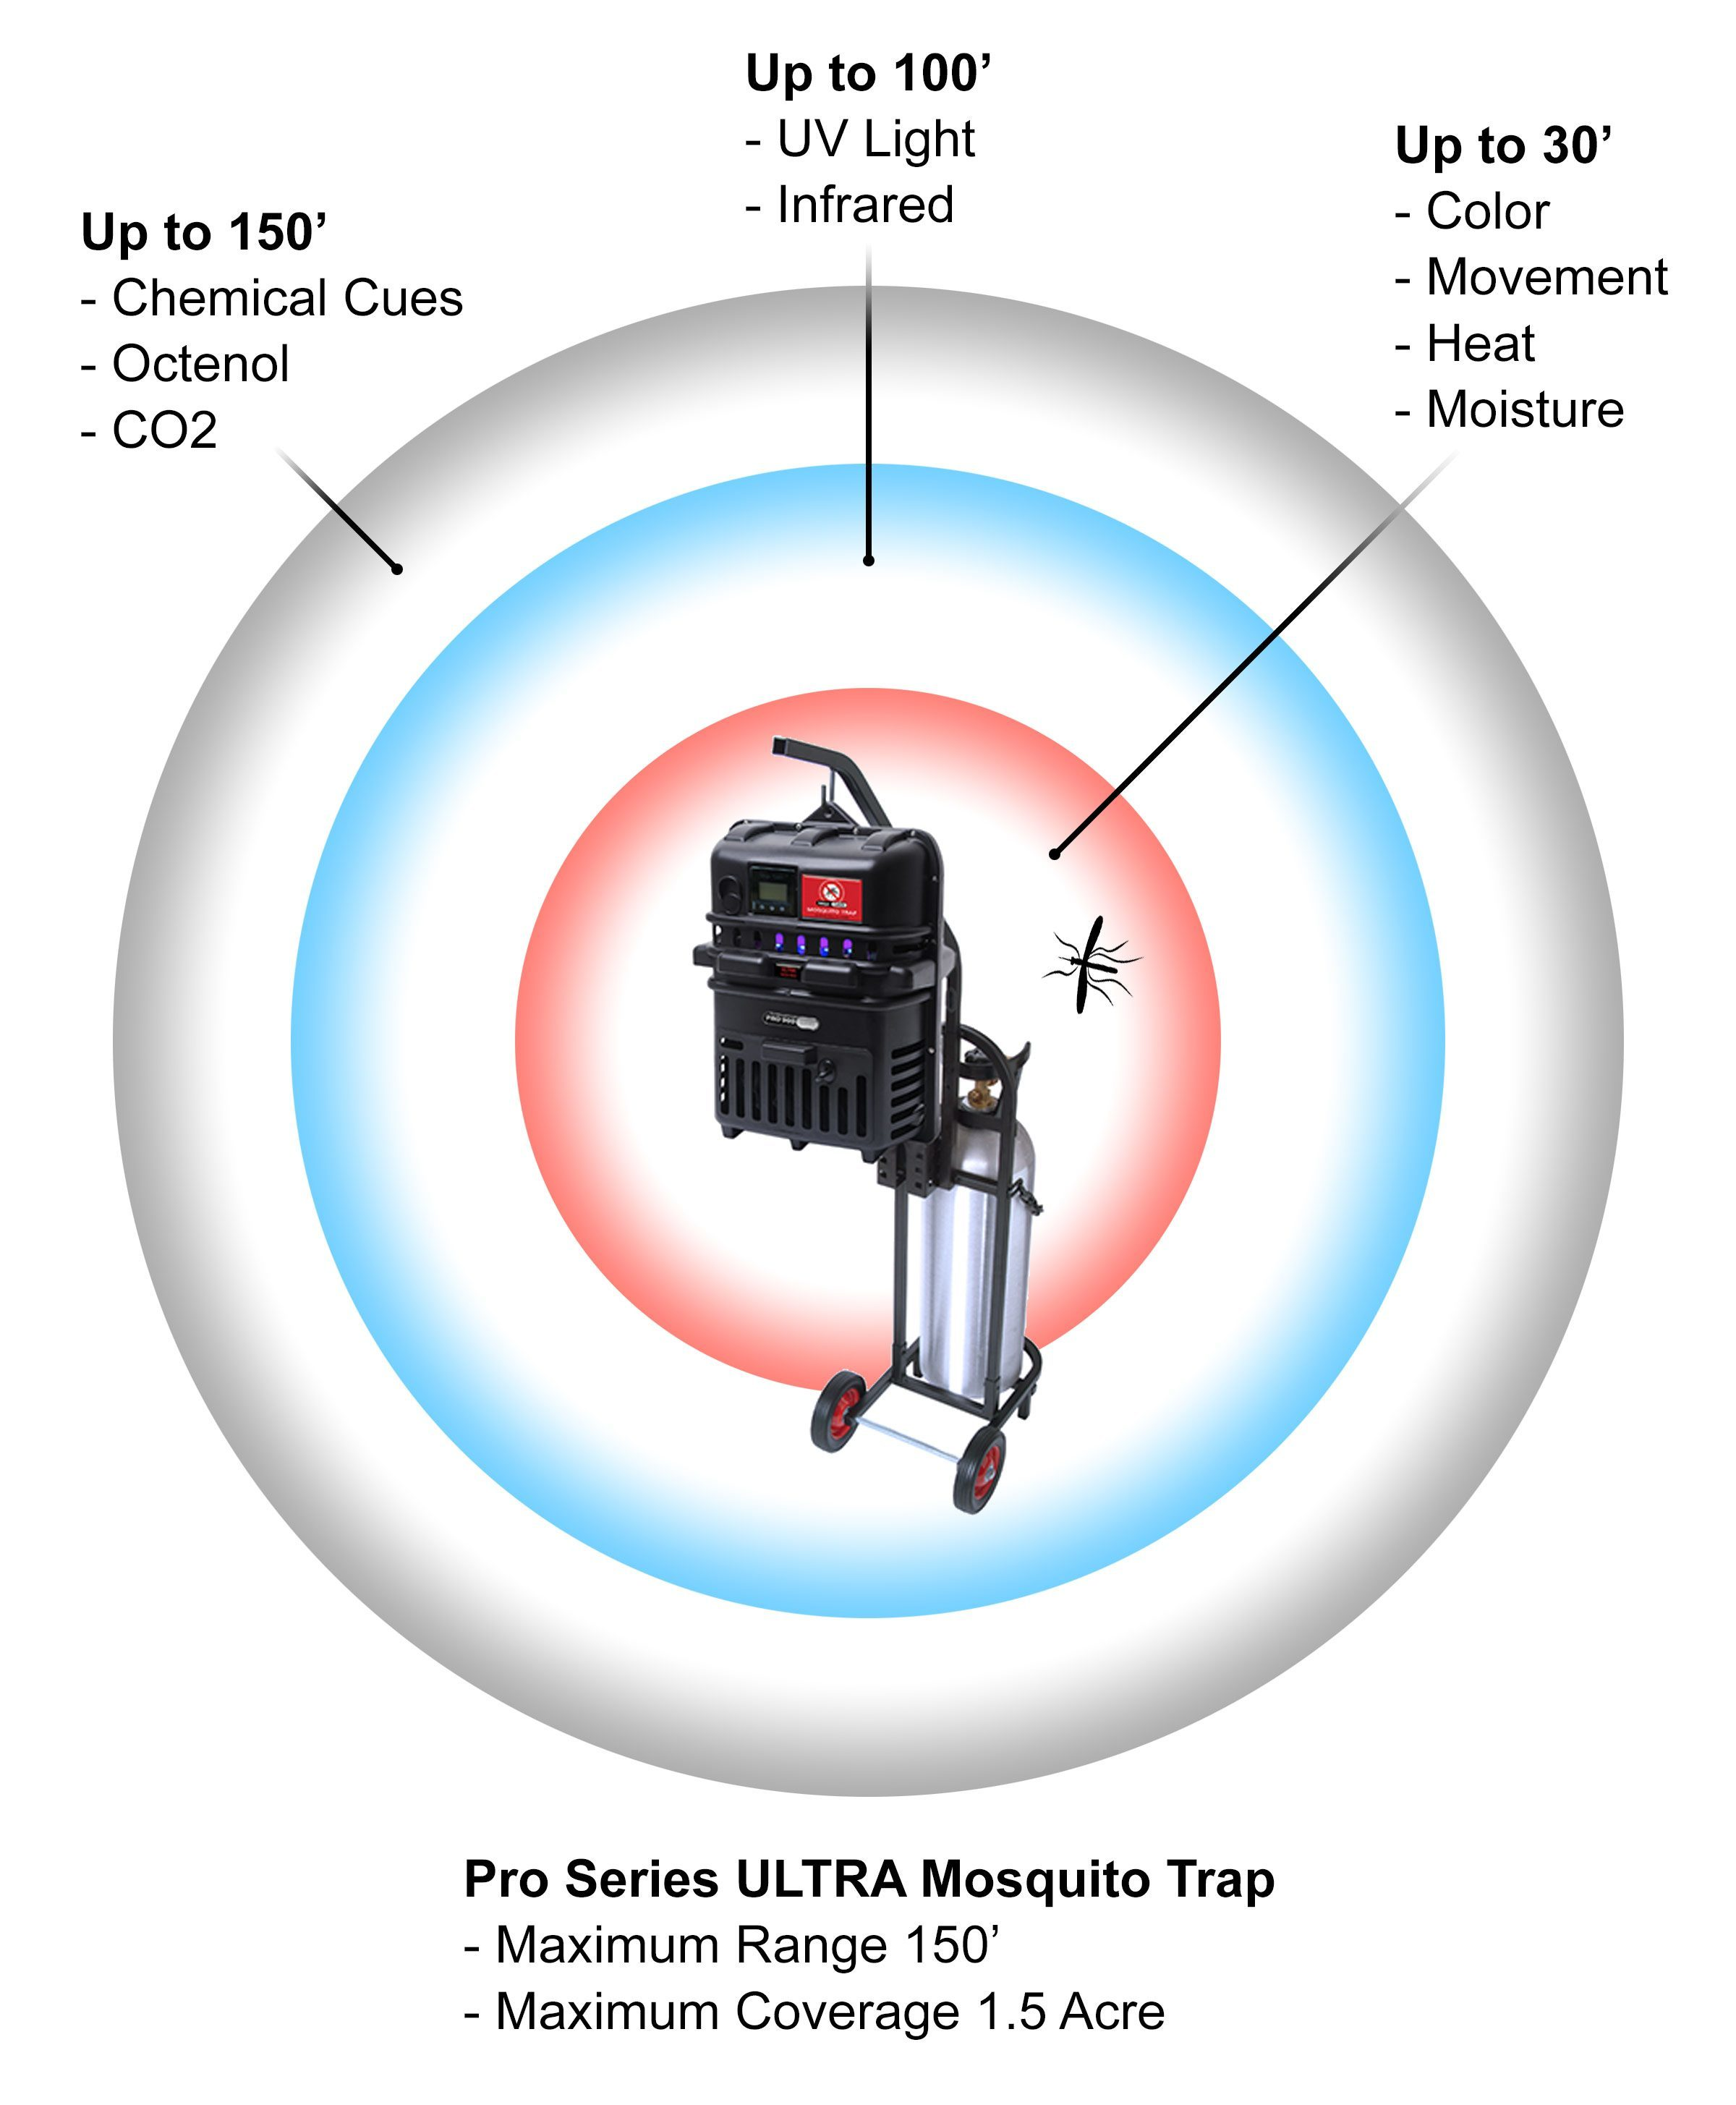 Mosquito Trap Features